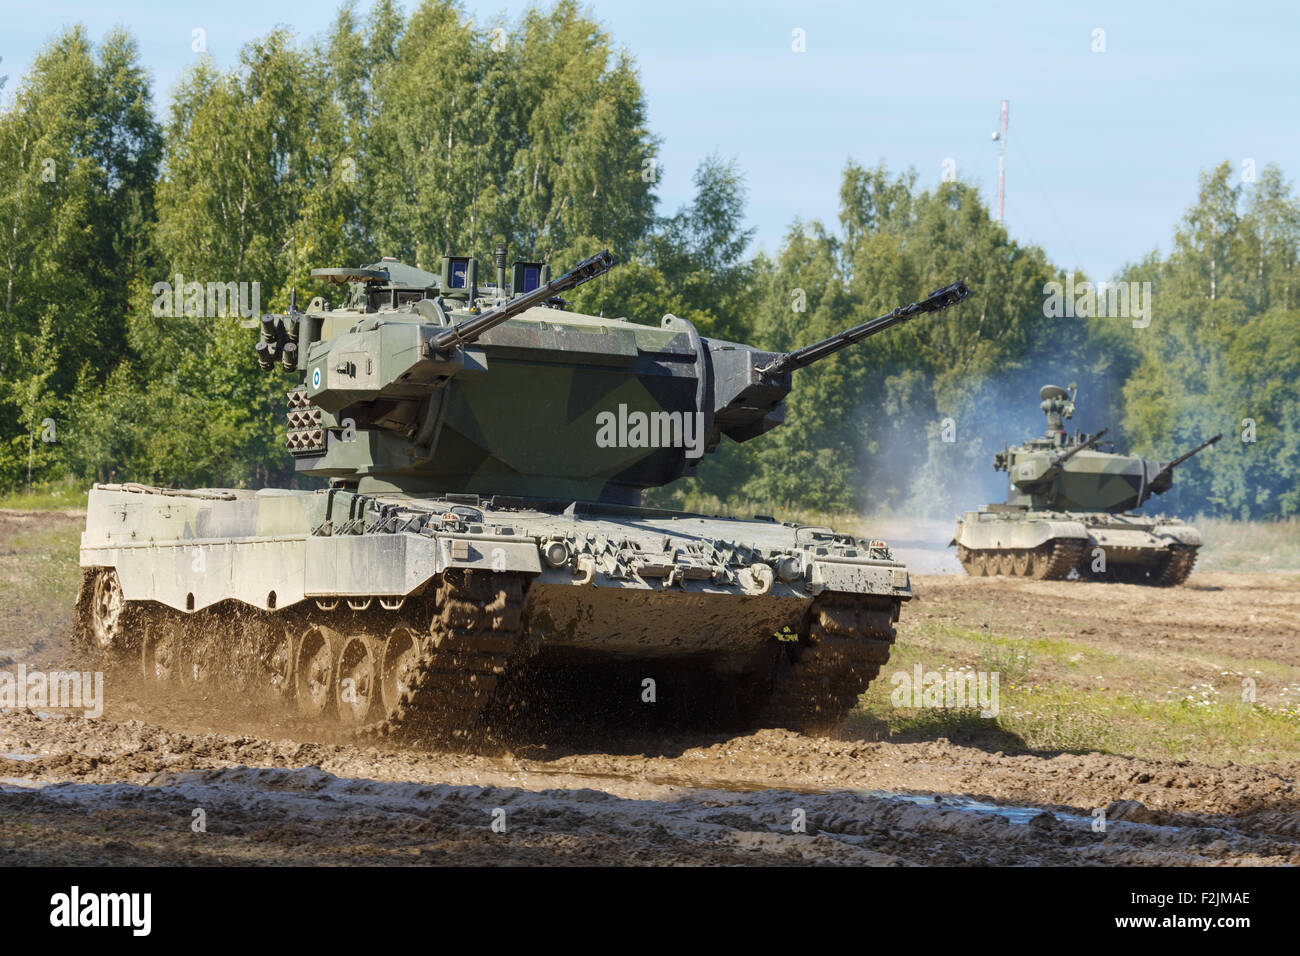 Leopard 2 Marksman self-propelled anti-aircraft gun of the Finnish Army. - Stock Image